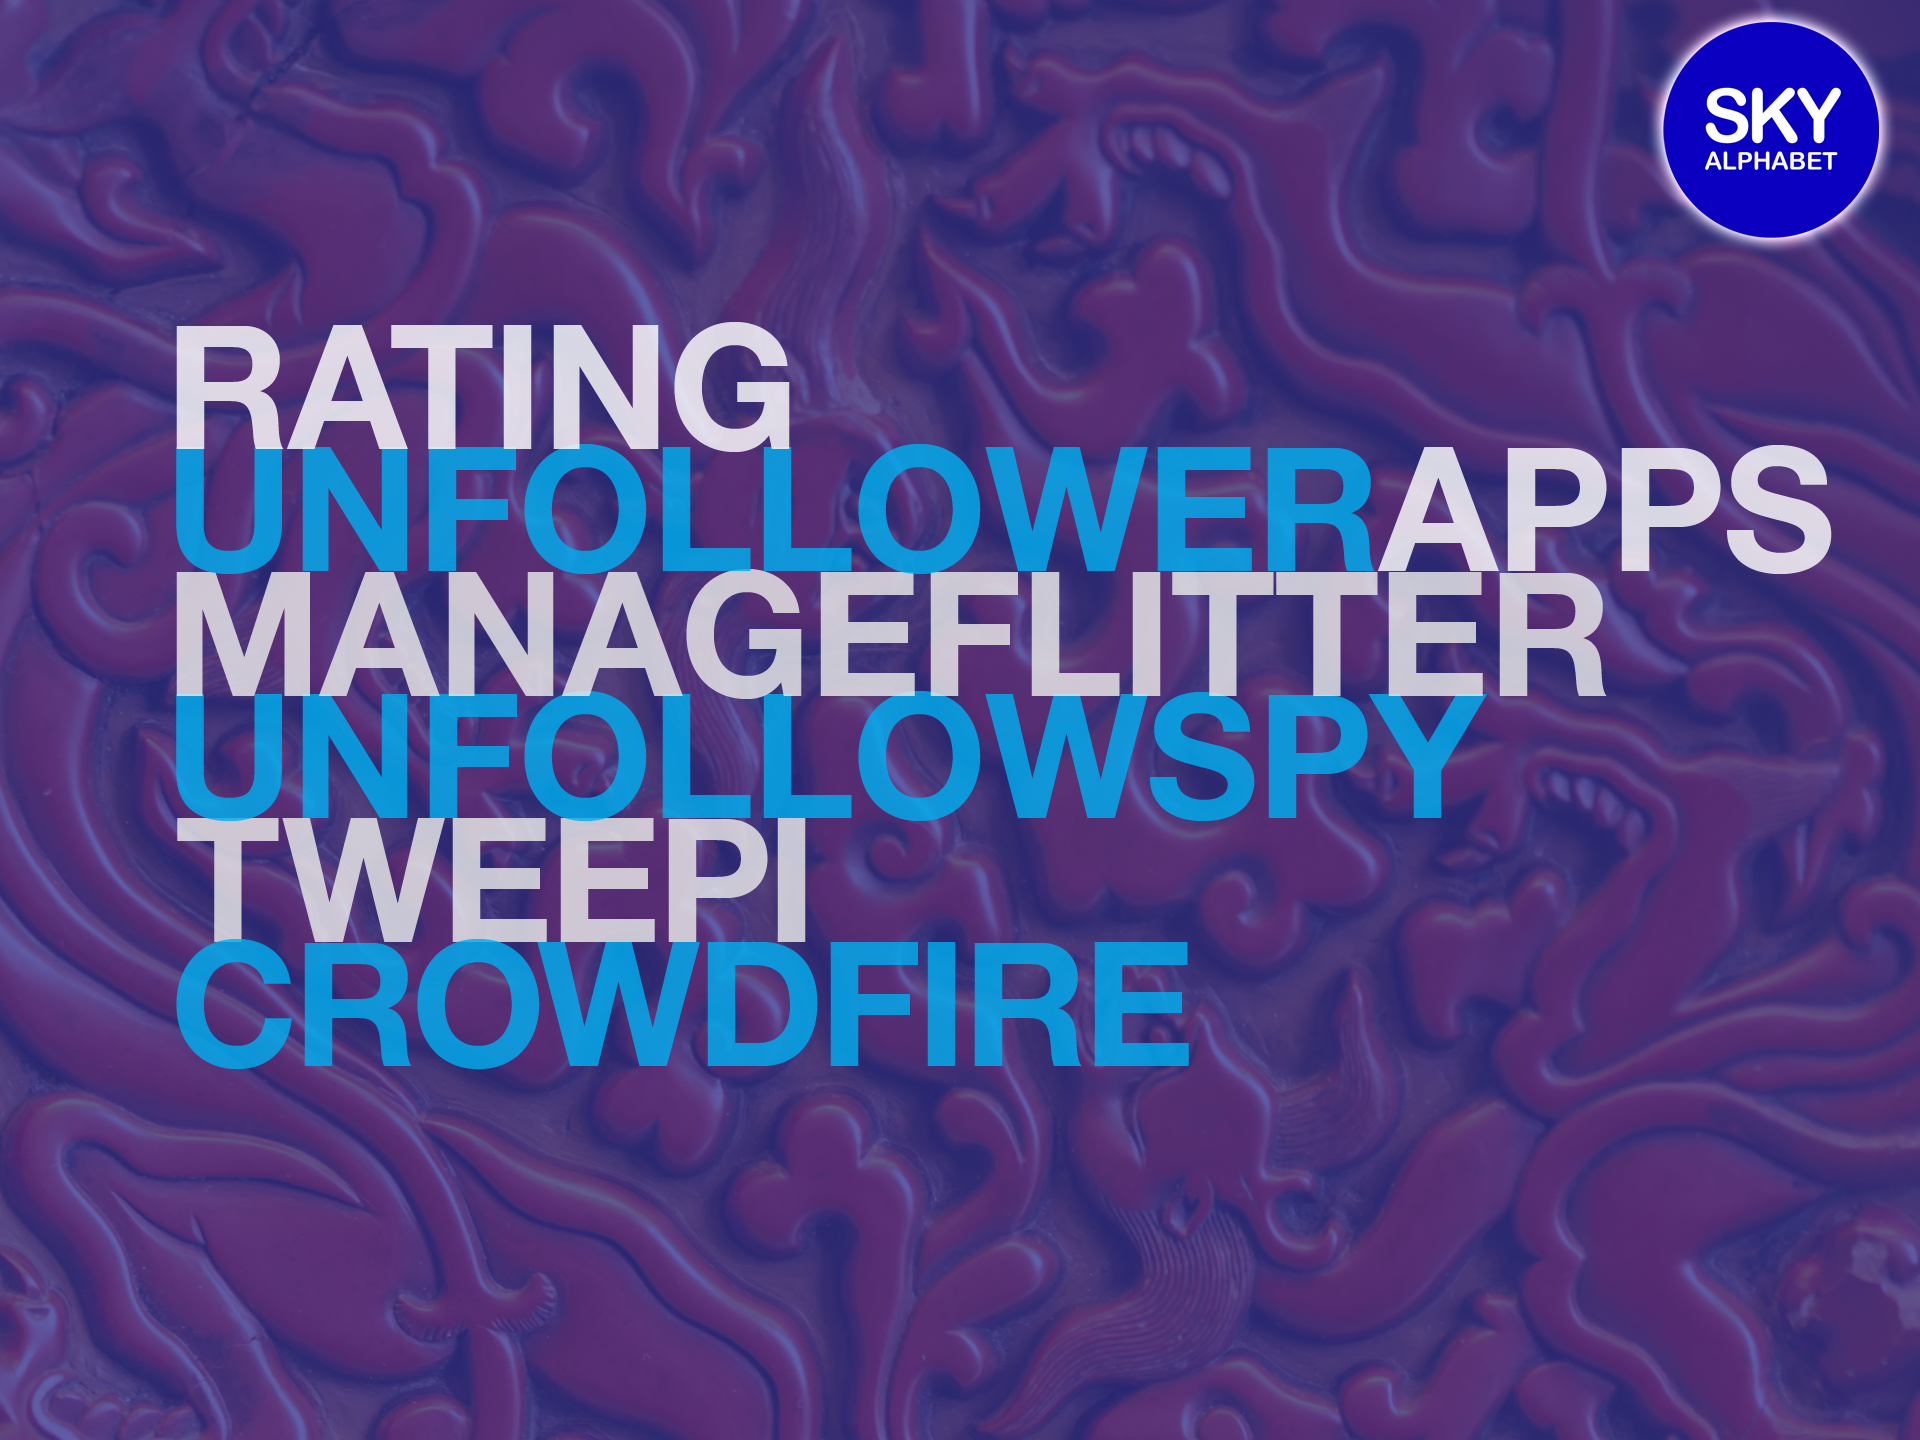 Rating the unfollower apps | crowdfire manageflitter tweepi